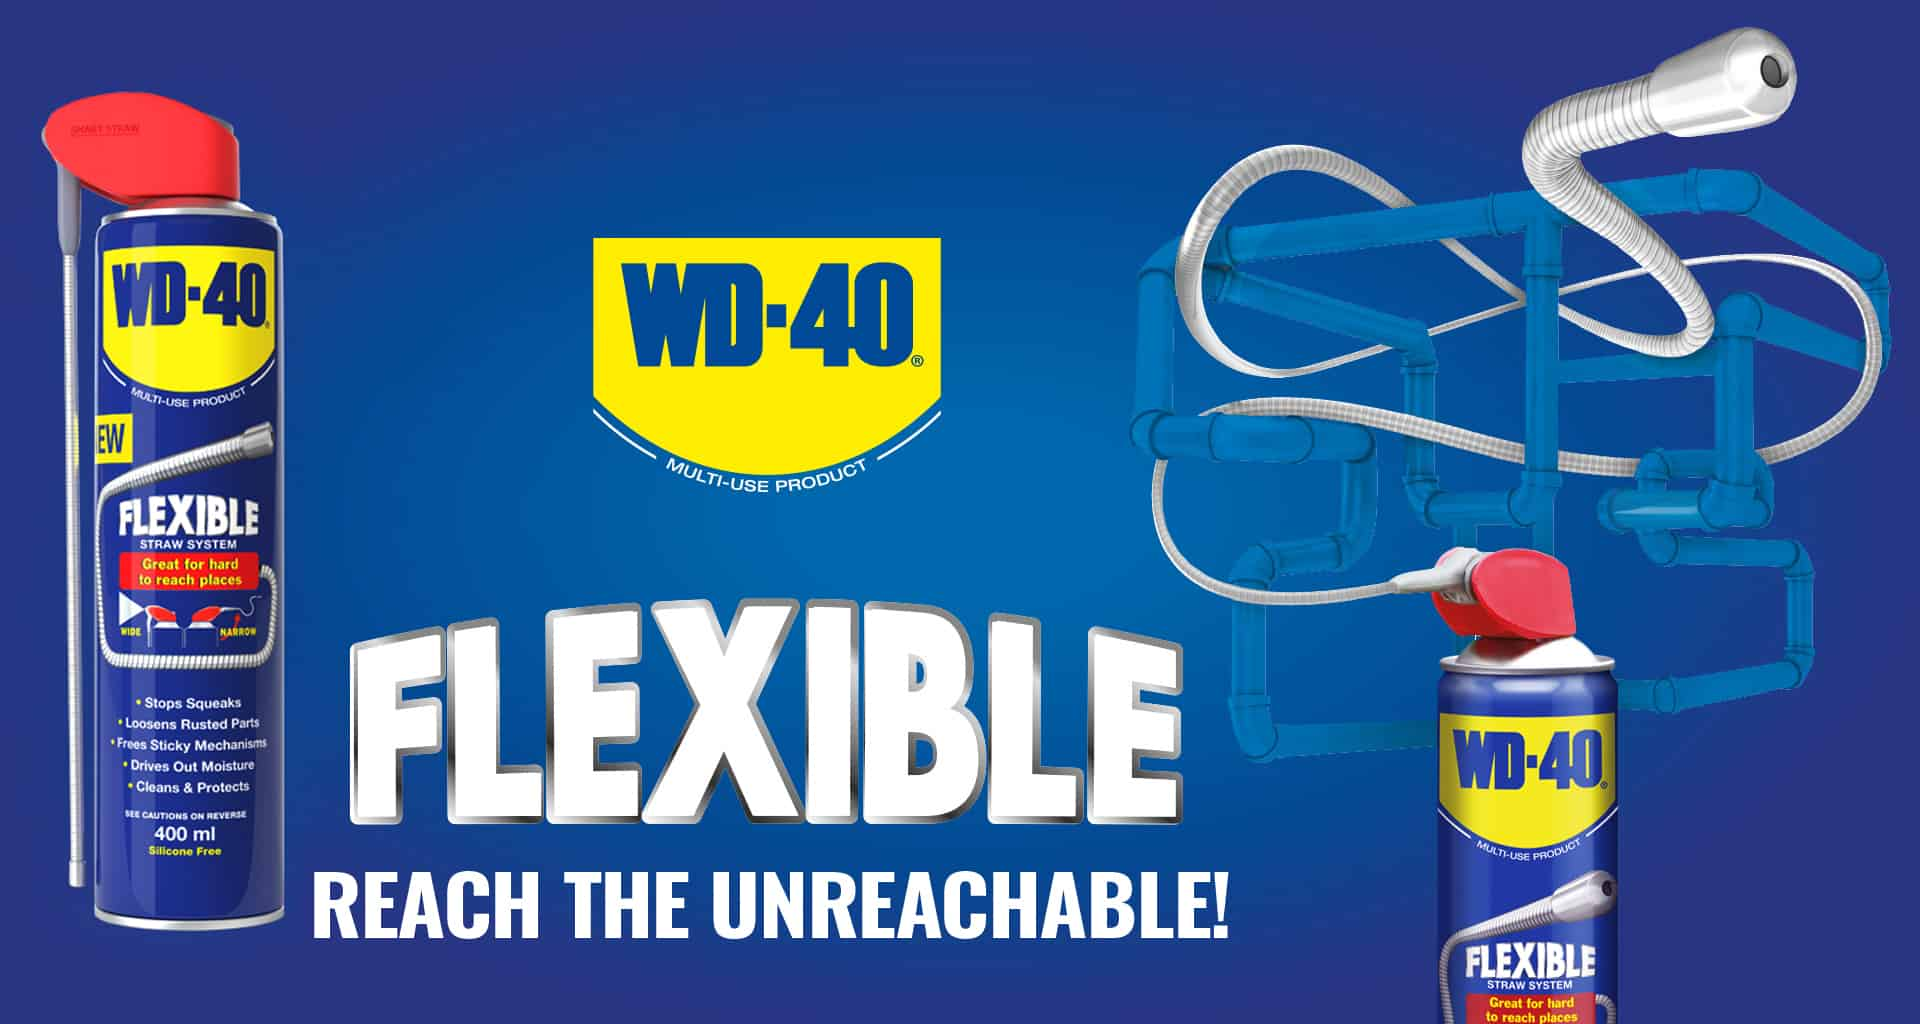 WD-40 Flexible... Reach the unreachable!